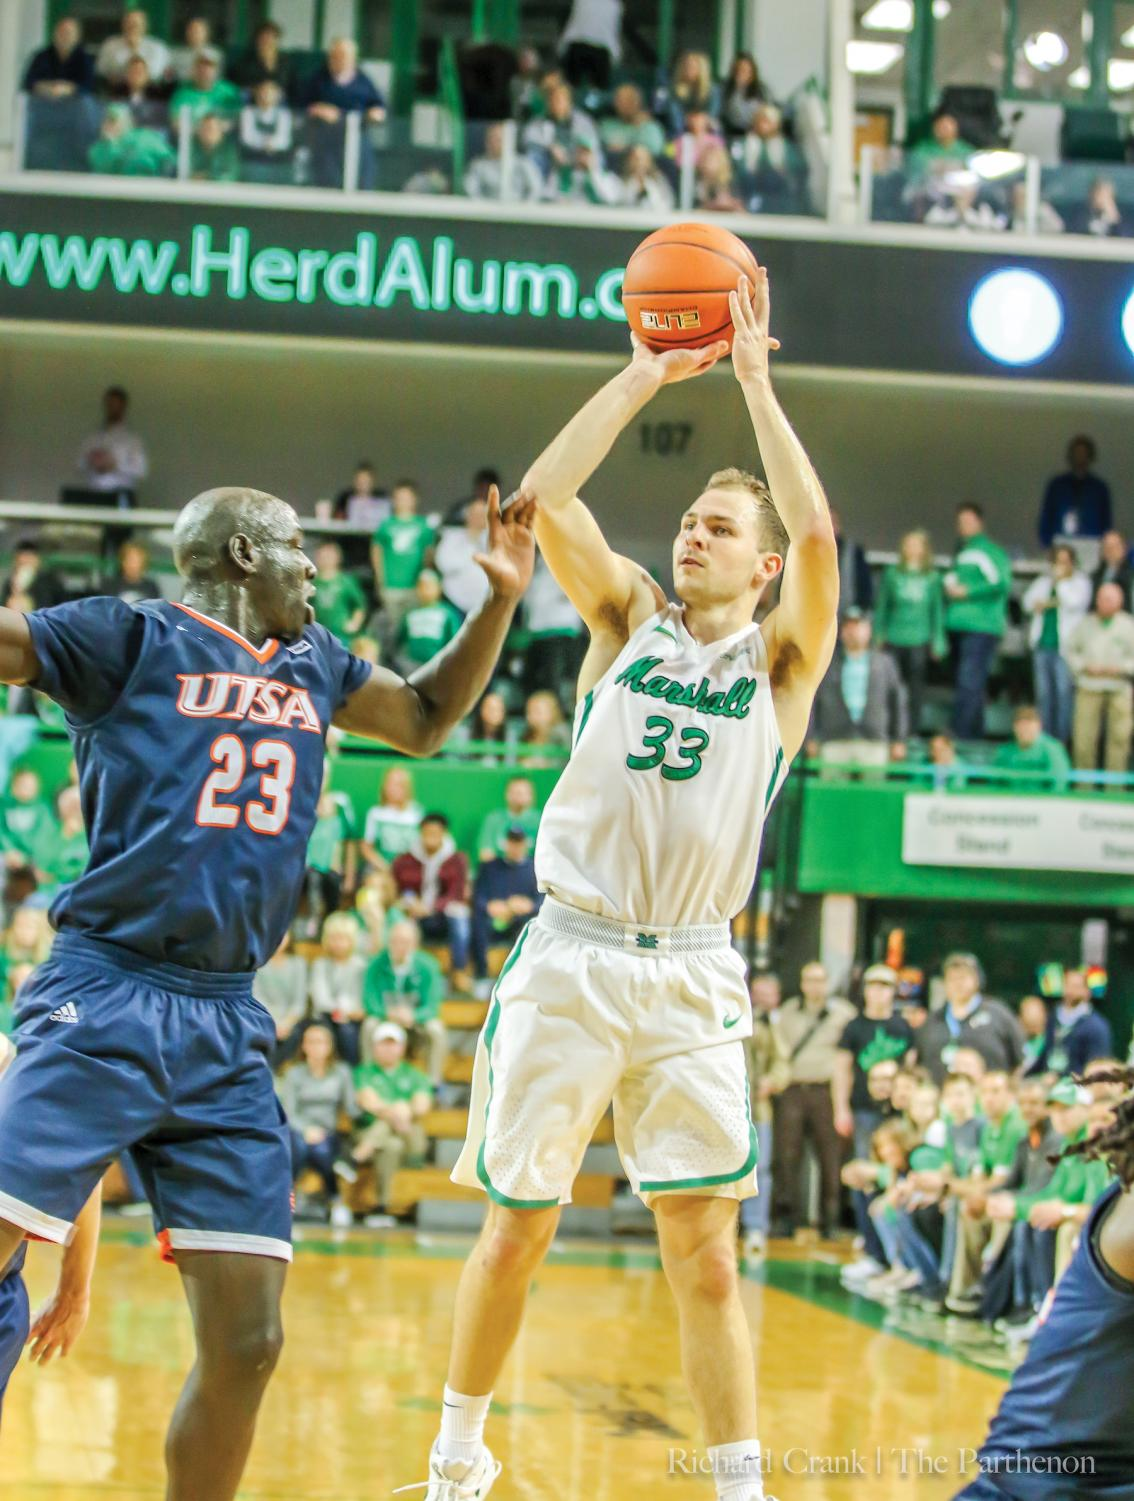 Marshall guard Jon Elmore (33) shoots a 3-pointer over UTSA's Atem Bier in the second half of the Herd's game against the Roadrunners on Feb. 2, 2019. Elmore made the shot and was fouled by Bior, setting up a four-point play to tie the game.